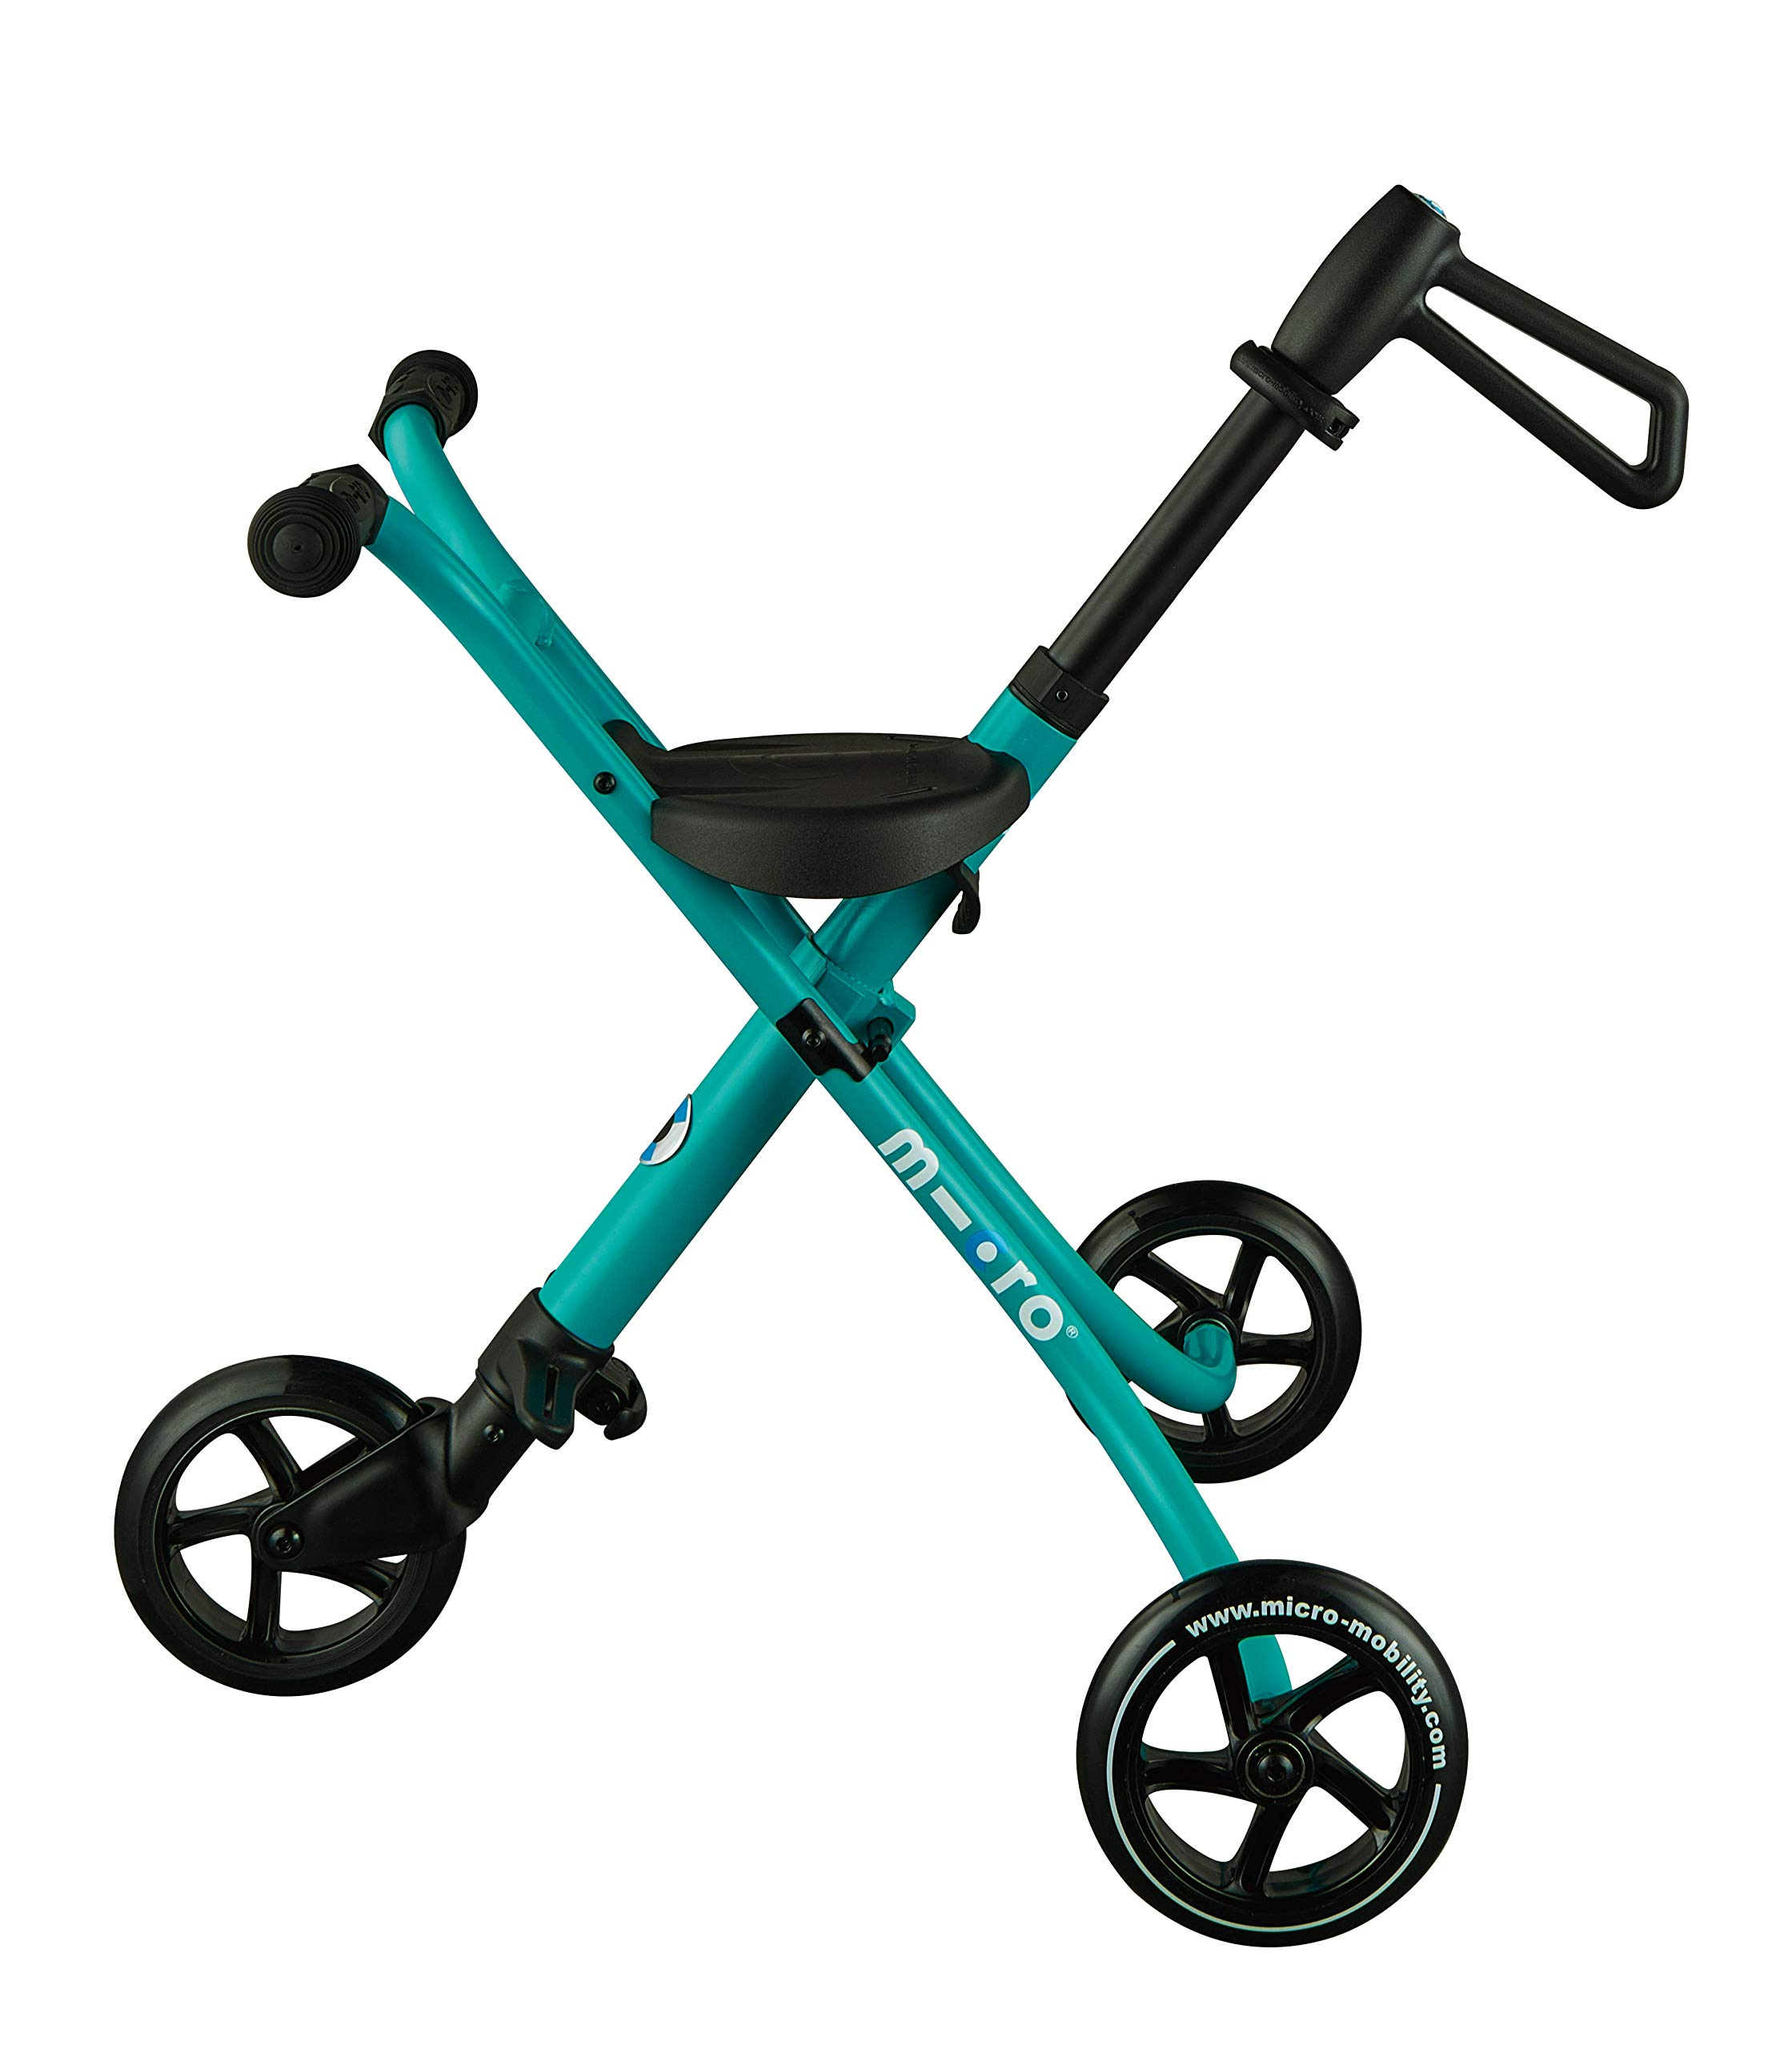 Micro Trike XL Ride-on Travel for Children Ages 18 Months + (Aqua)